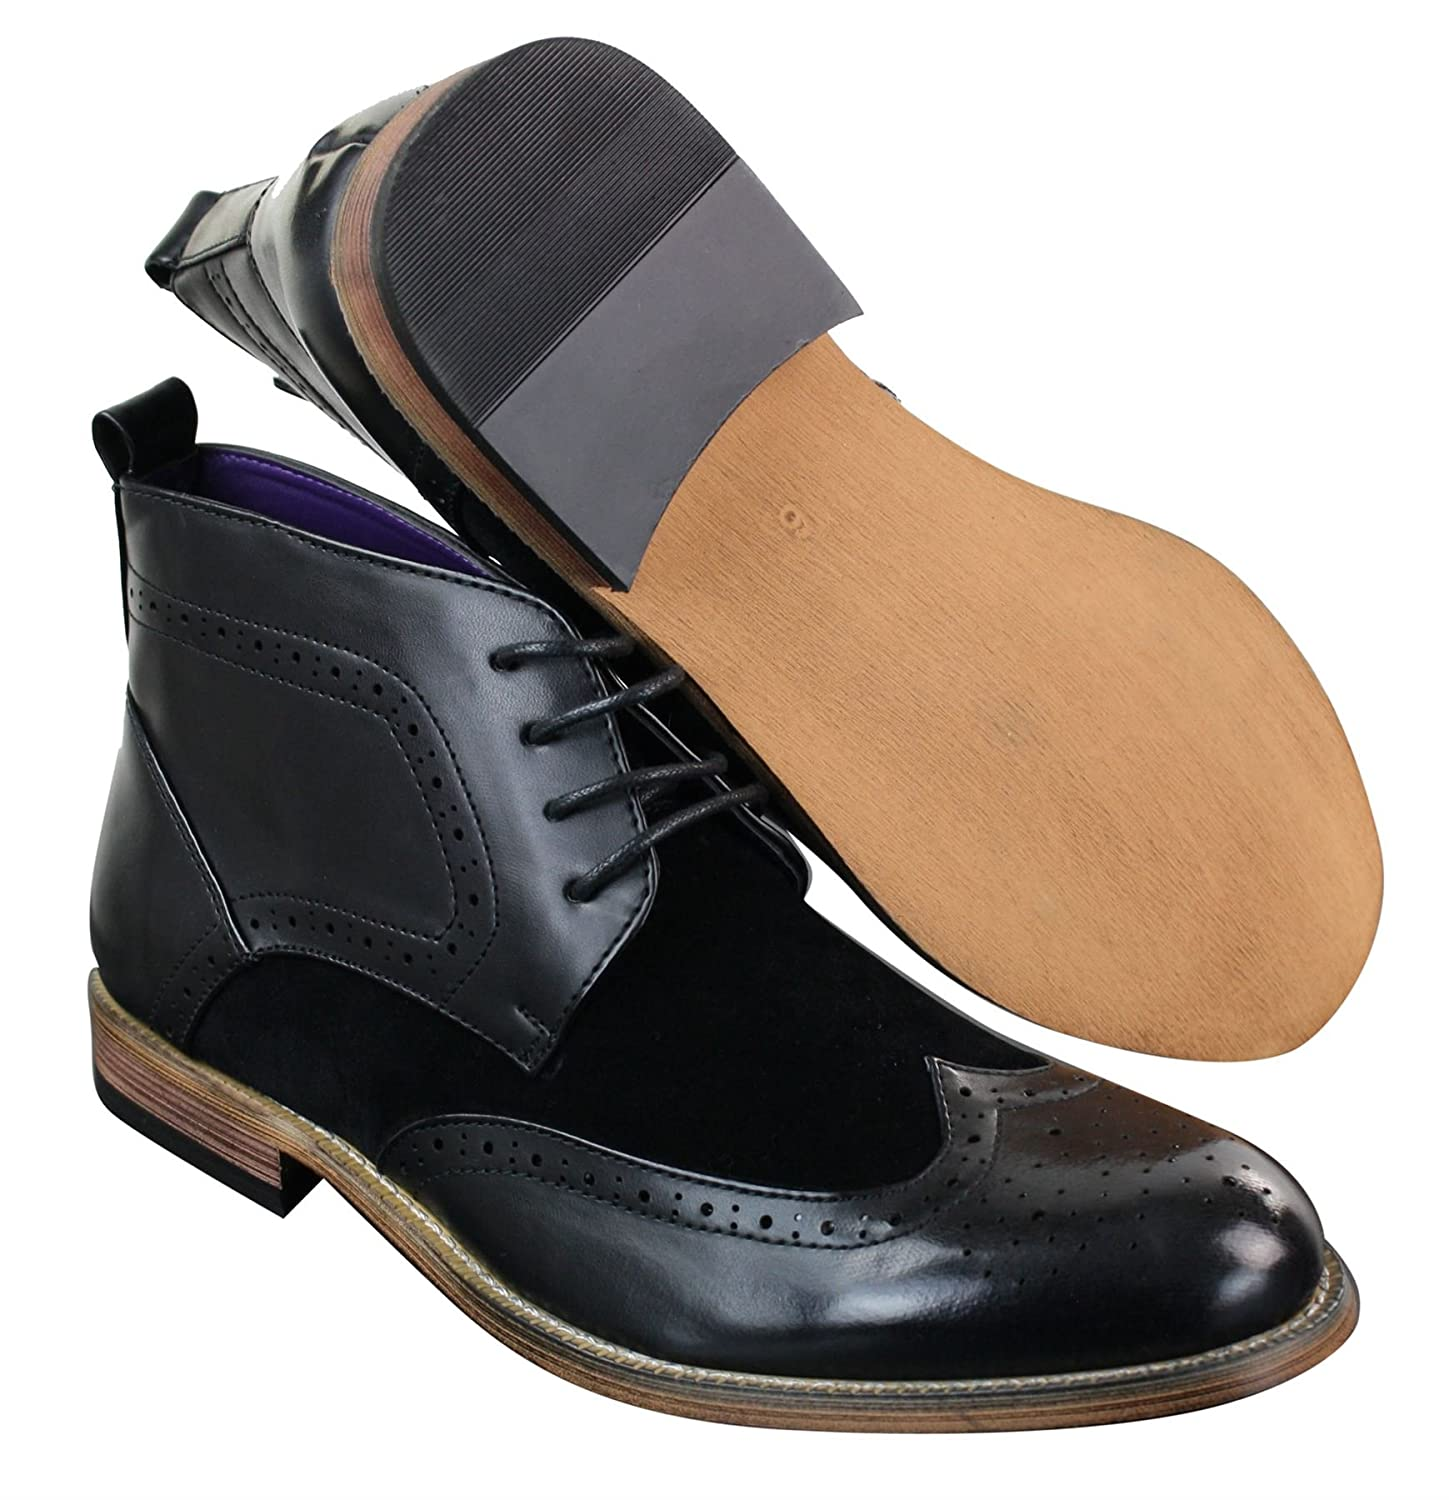 8a012e149a4ee Mens Black Leather Suede PU Brogues Smart Casual Boots Ankle Shoes Lace   Amazon.co.uk  Shoes   Bags